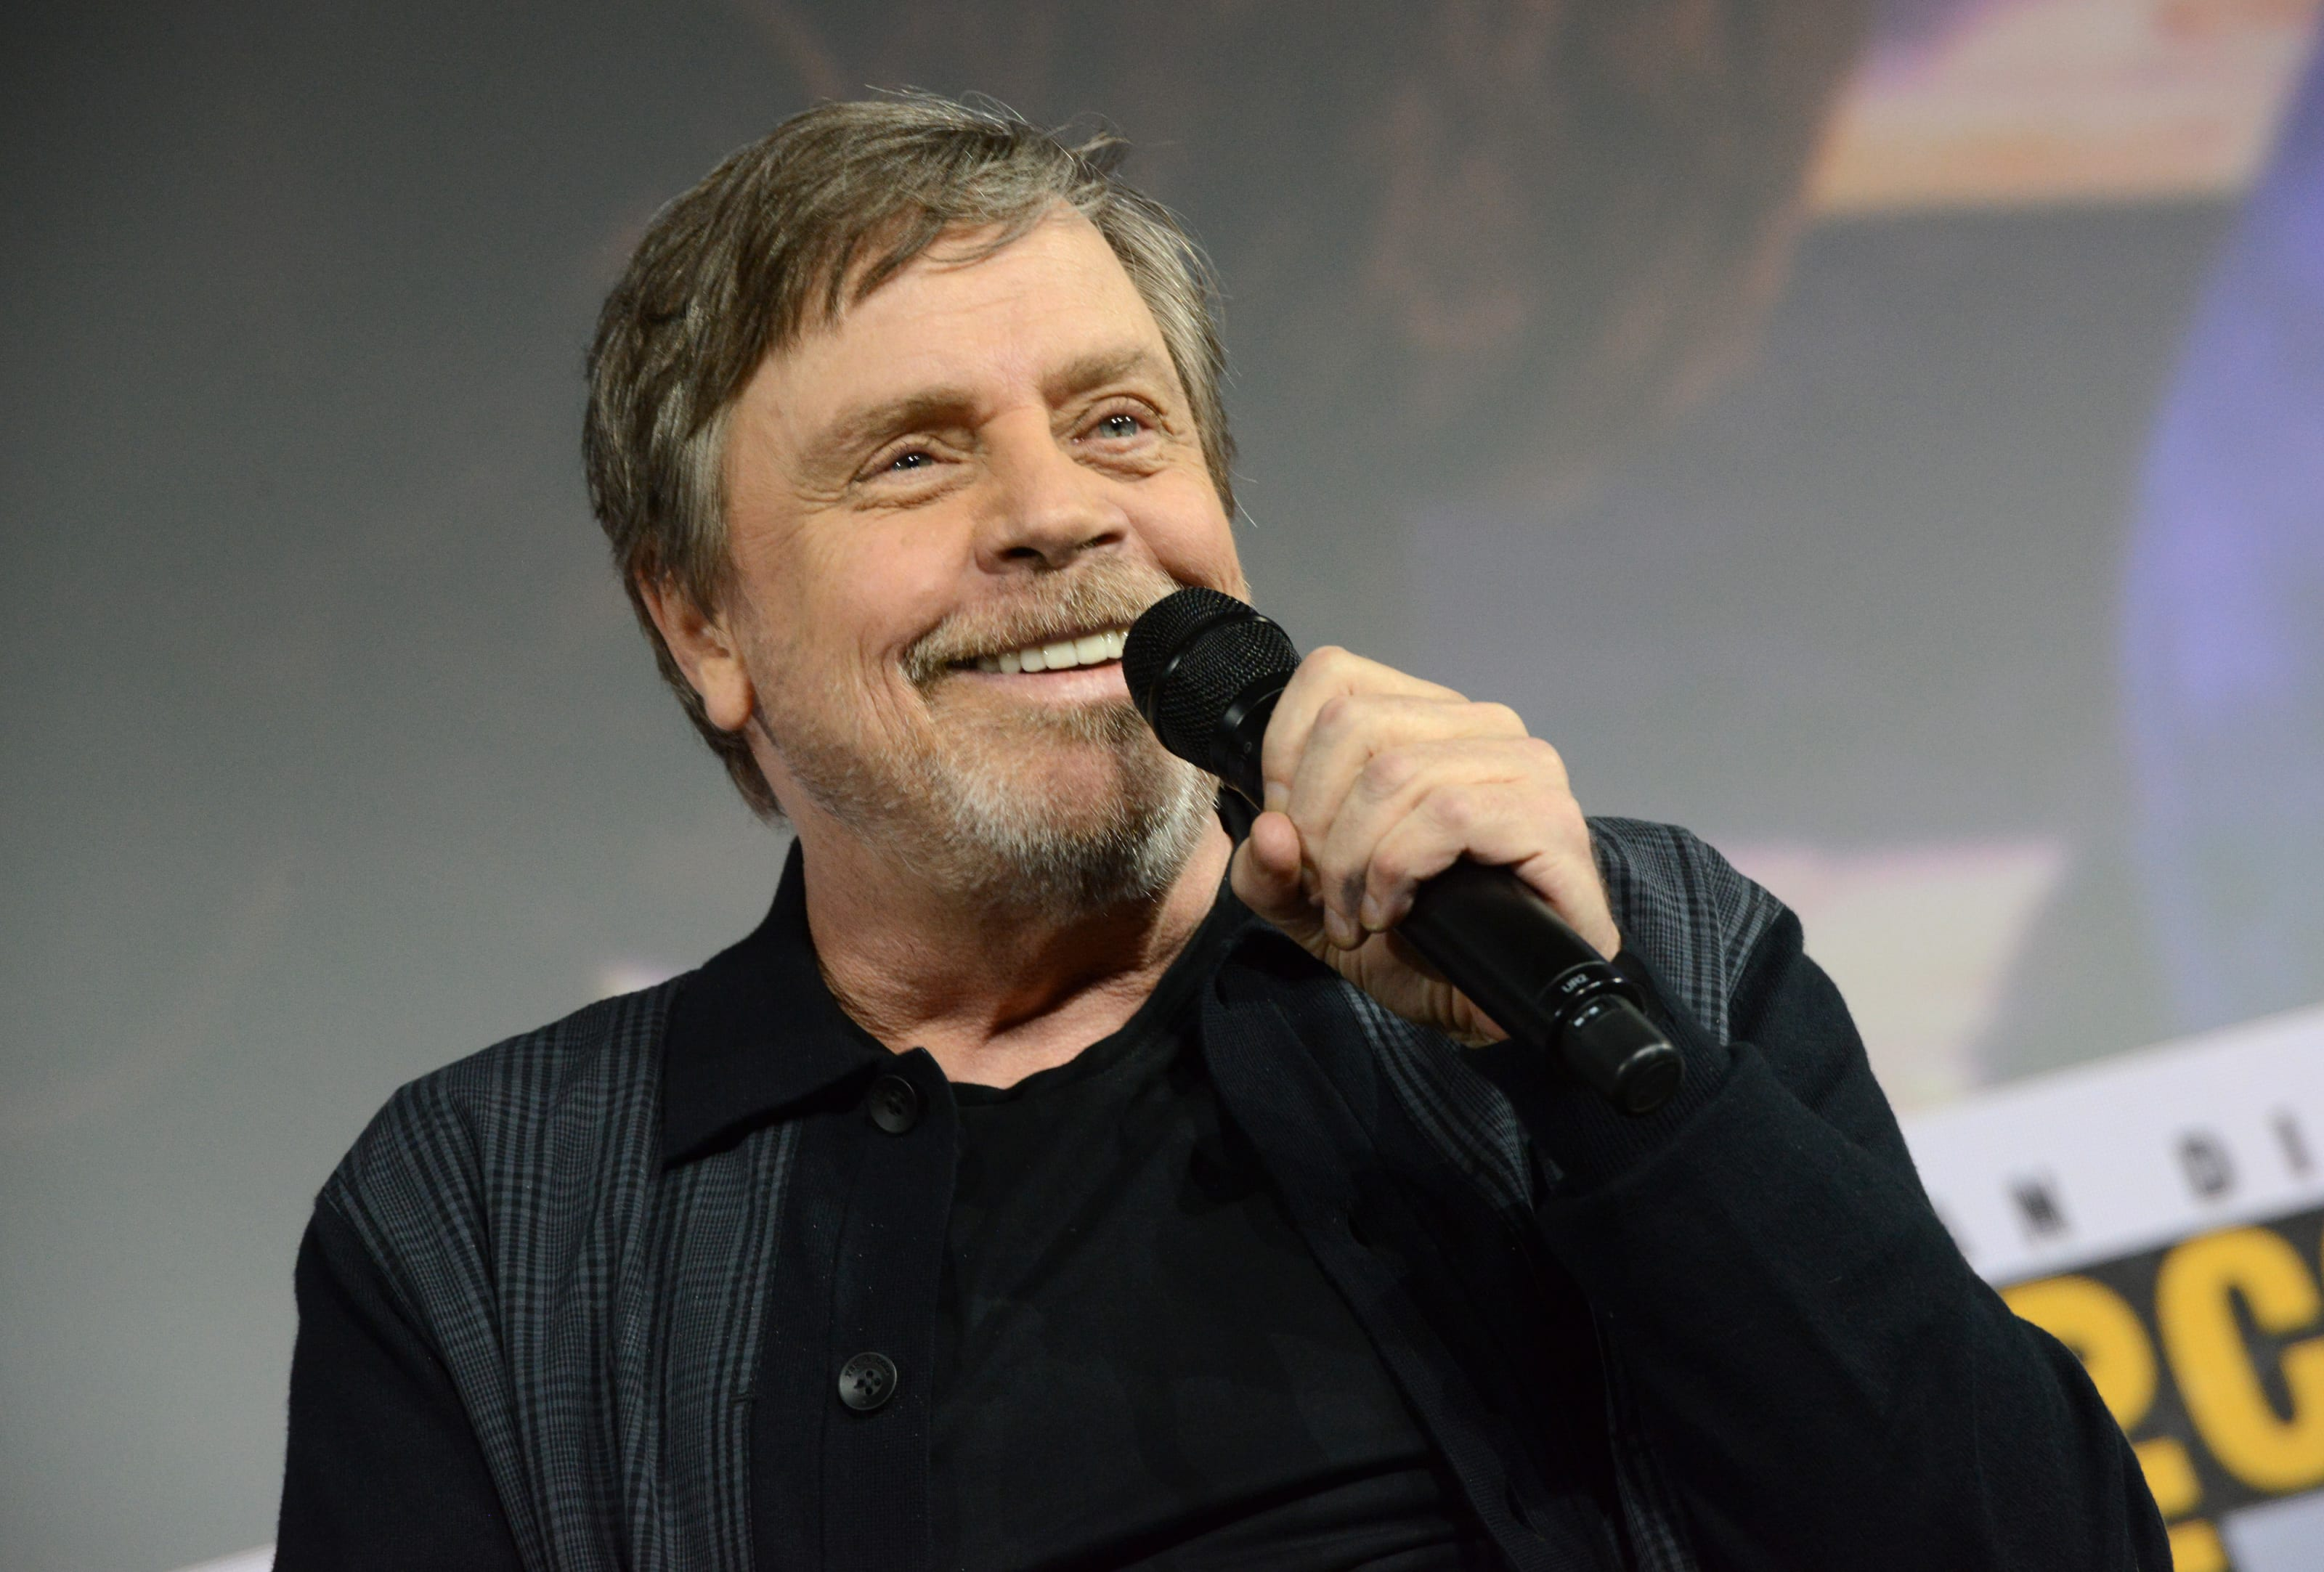 Star Wars: Mark Hamill reveals how I Am Your Father was hidden from cast